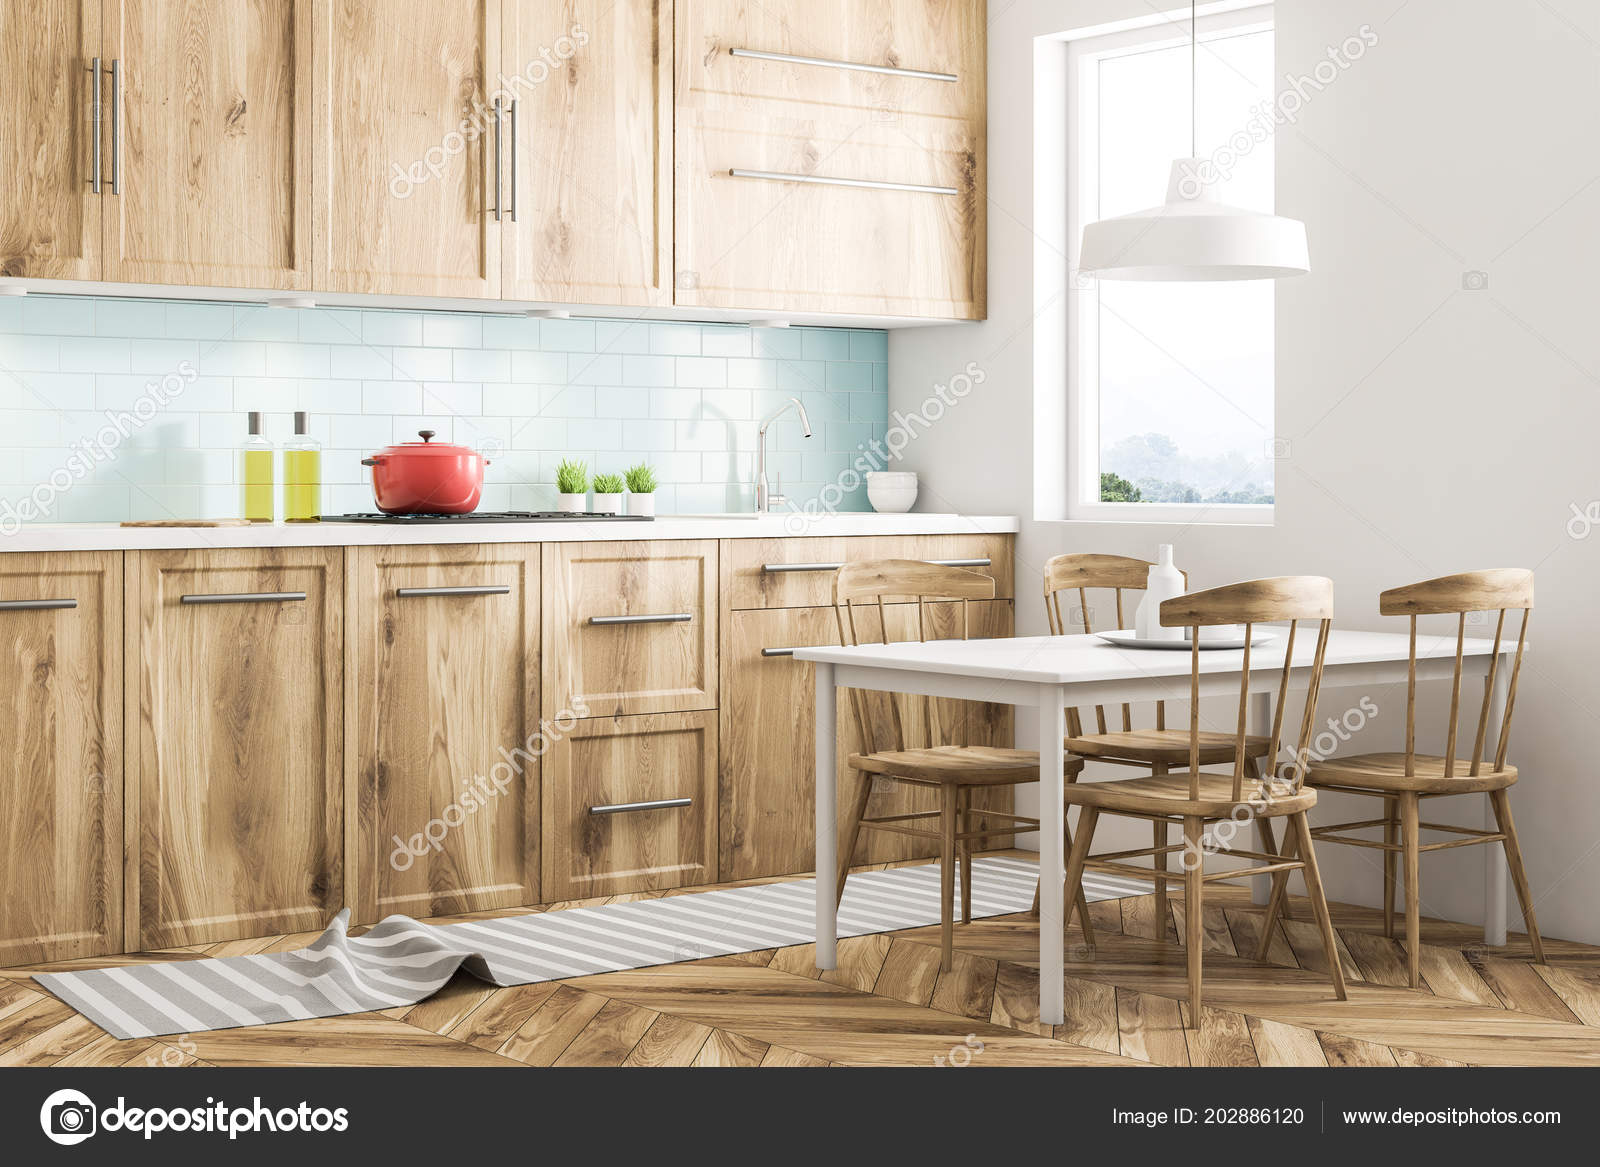 White Scandinavian Style Kitchen Interior With Blue Tiled And White Walls,  A Wooden Floor, Wooden Countertops And Cabinets And A White Table With  Chairs.